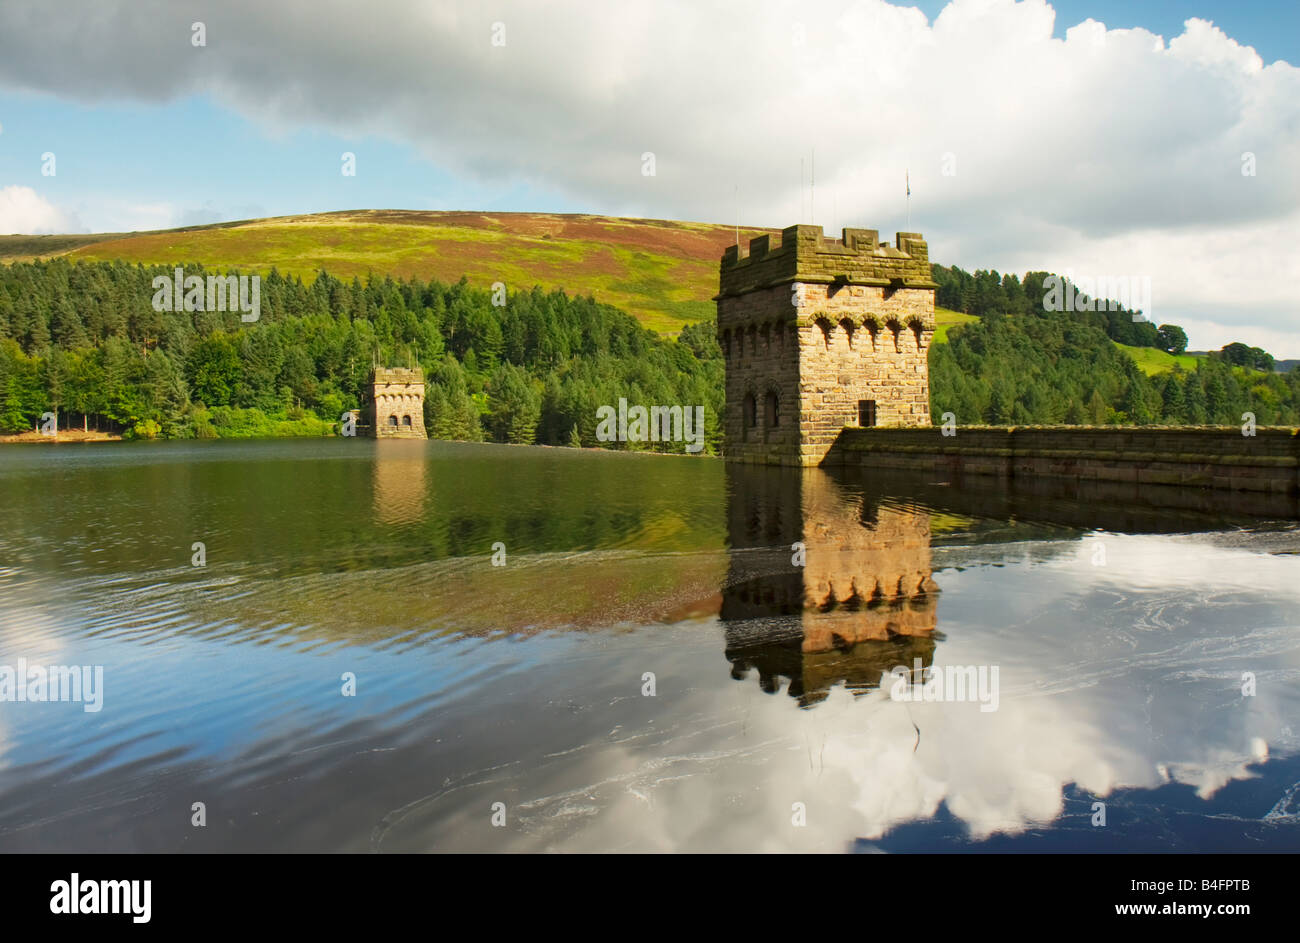 Derwent Dam reflection in the water of the reservoir Peak District September 2008 - Stock Image